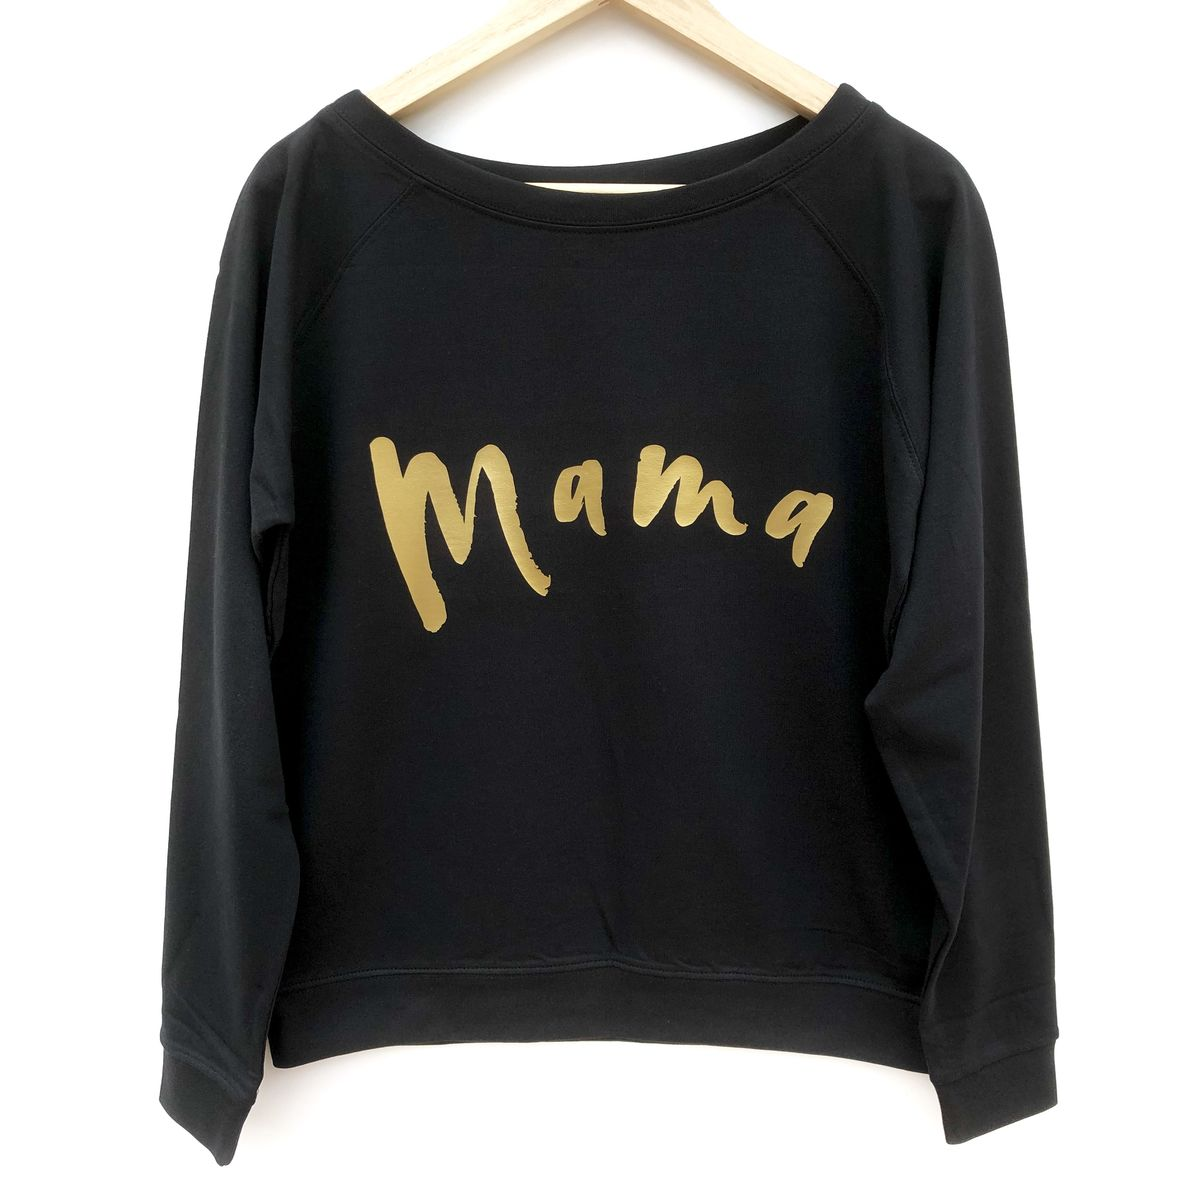 Gold 'Mama' Women's Sweatshirt - product images  of